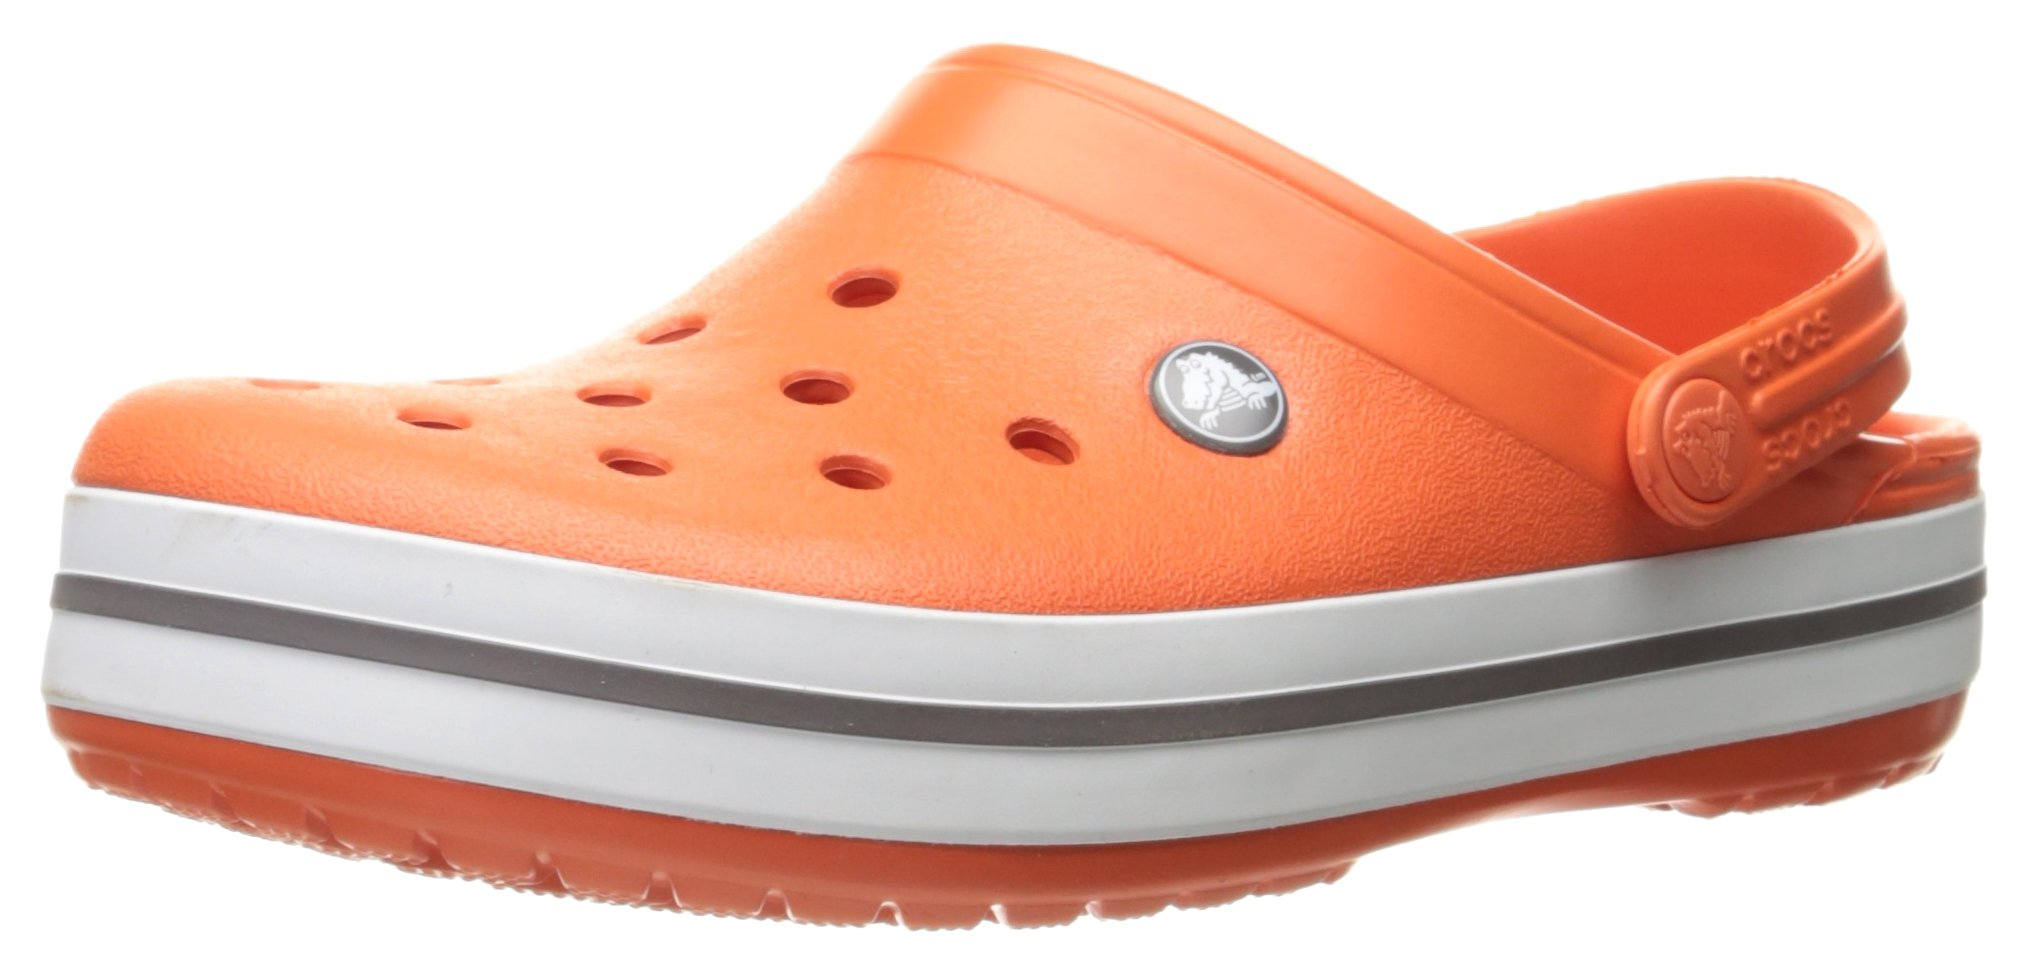 Crocs Unisex Crocband Clog, Tangerine/White, 9 US Men/11 US Women